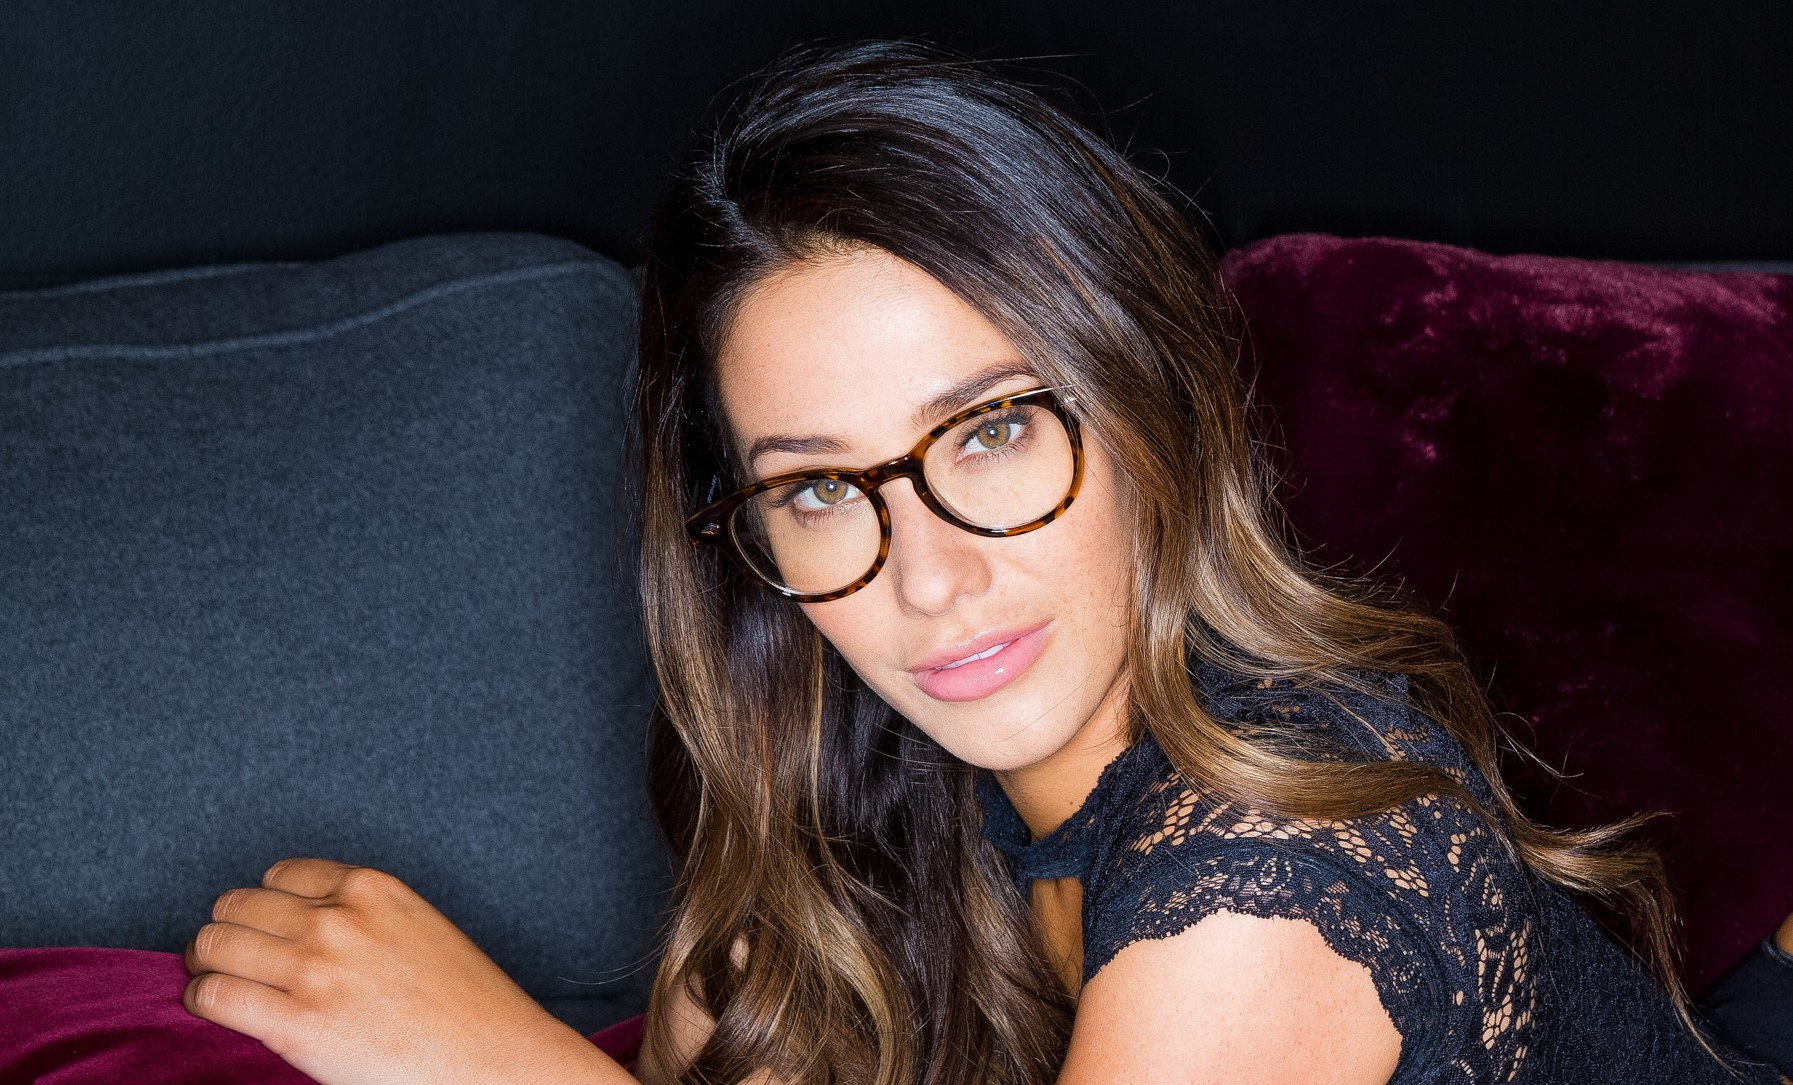 eva lovia glasses wallpaper 73654